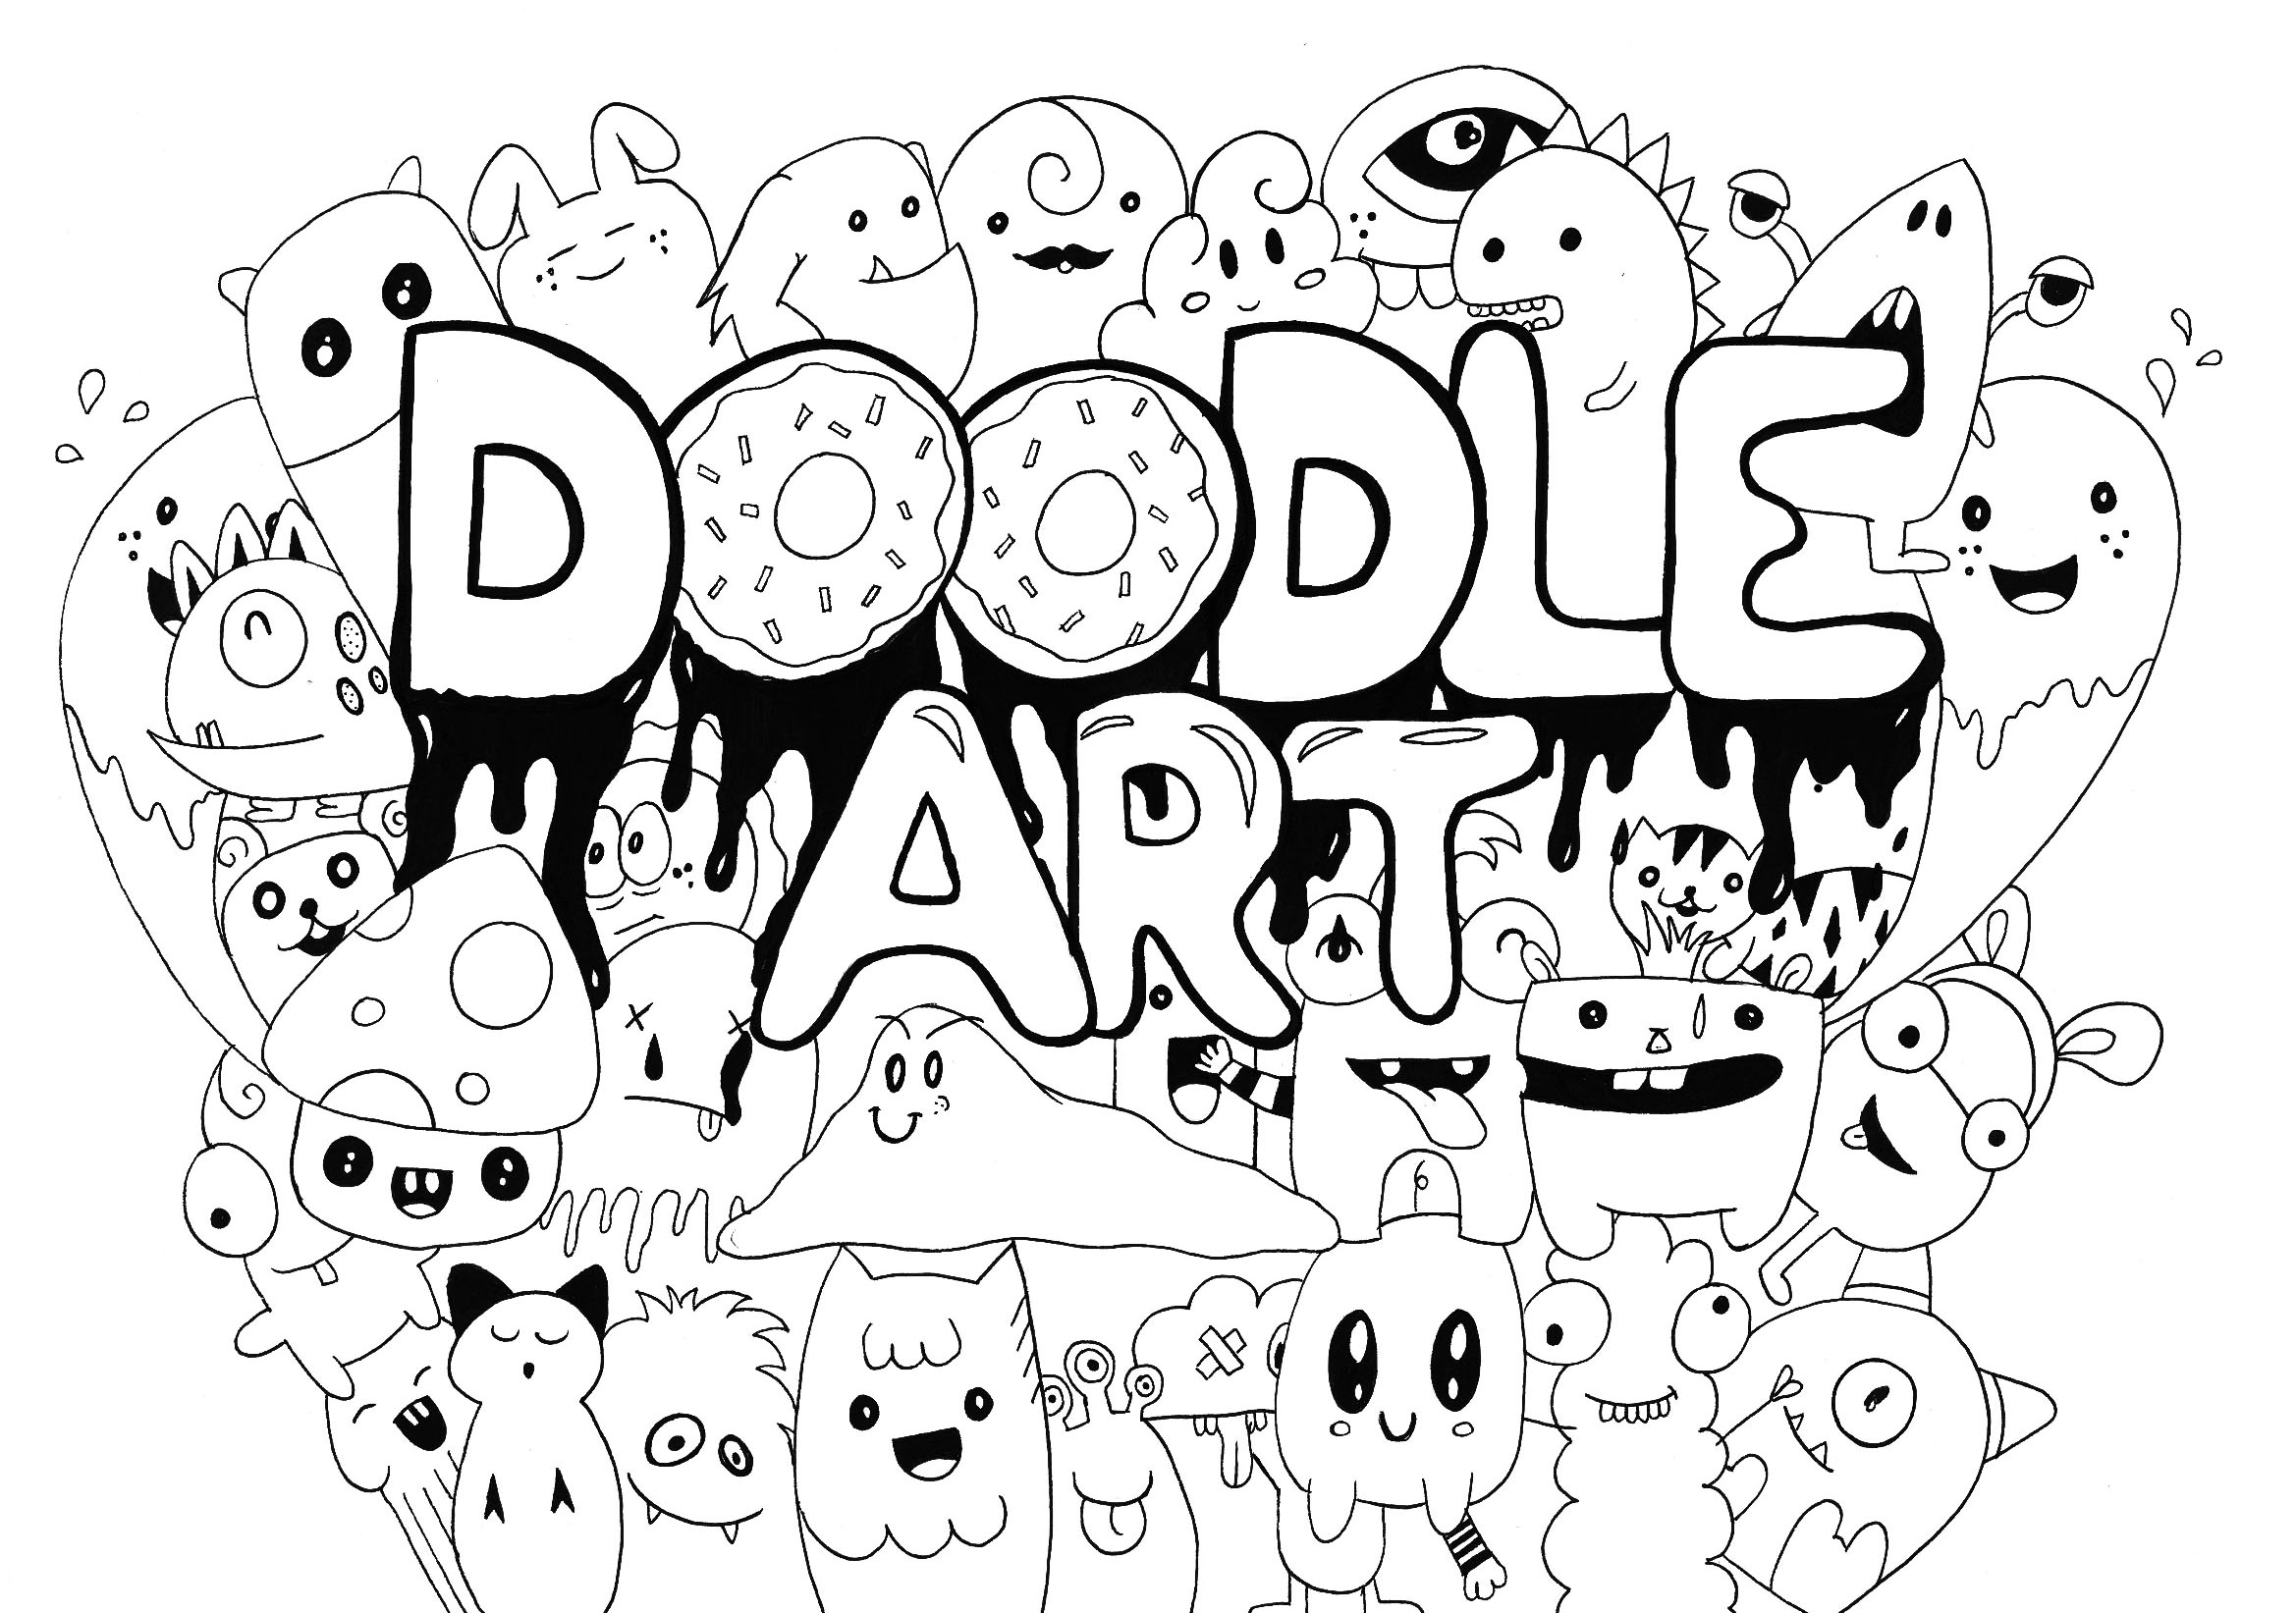 coloring cute doodle art marshmallows doodle coloring page printable cutekawaii etsy art coloring cute doodle